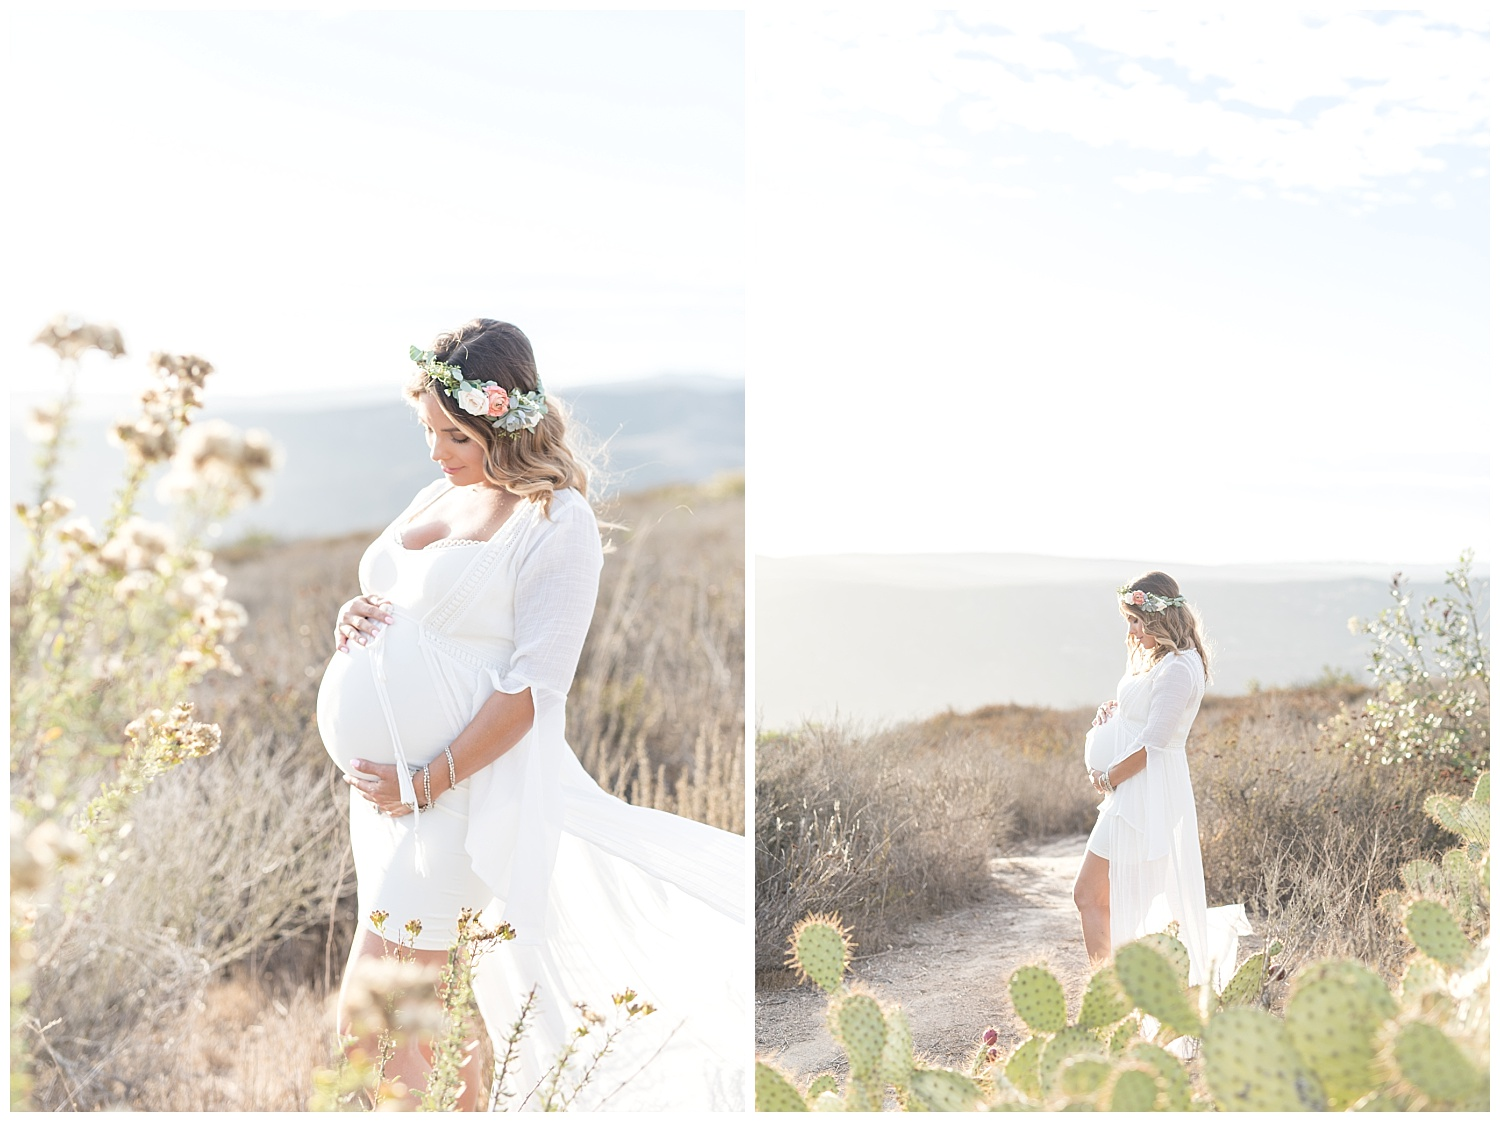 ashley - laguna beach, orange county hiking trail - maternity-0025